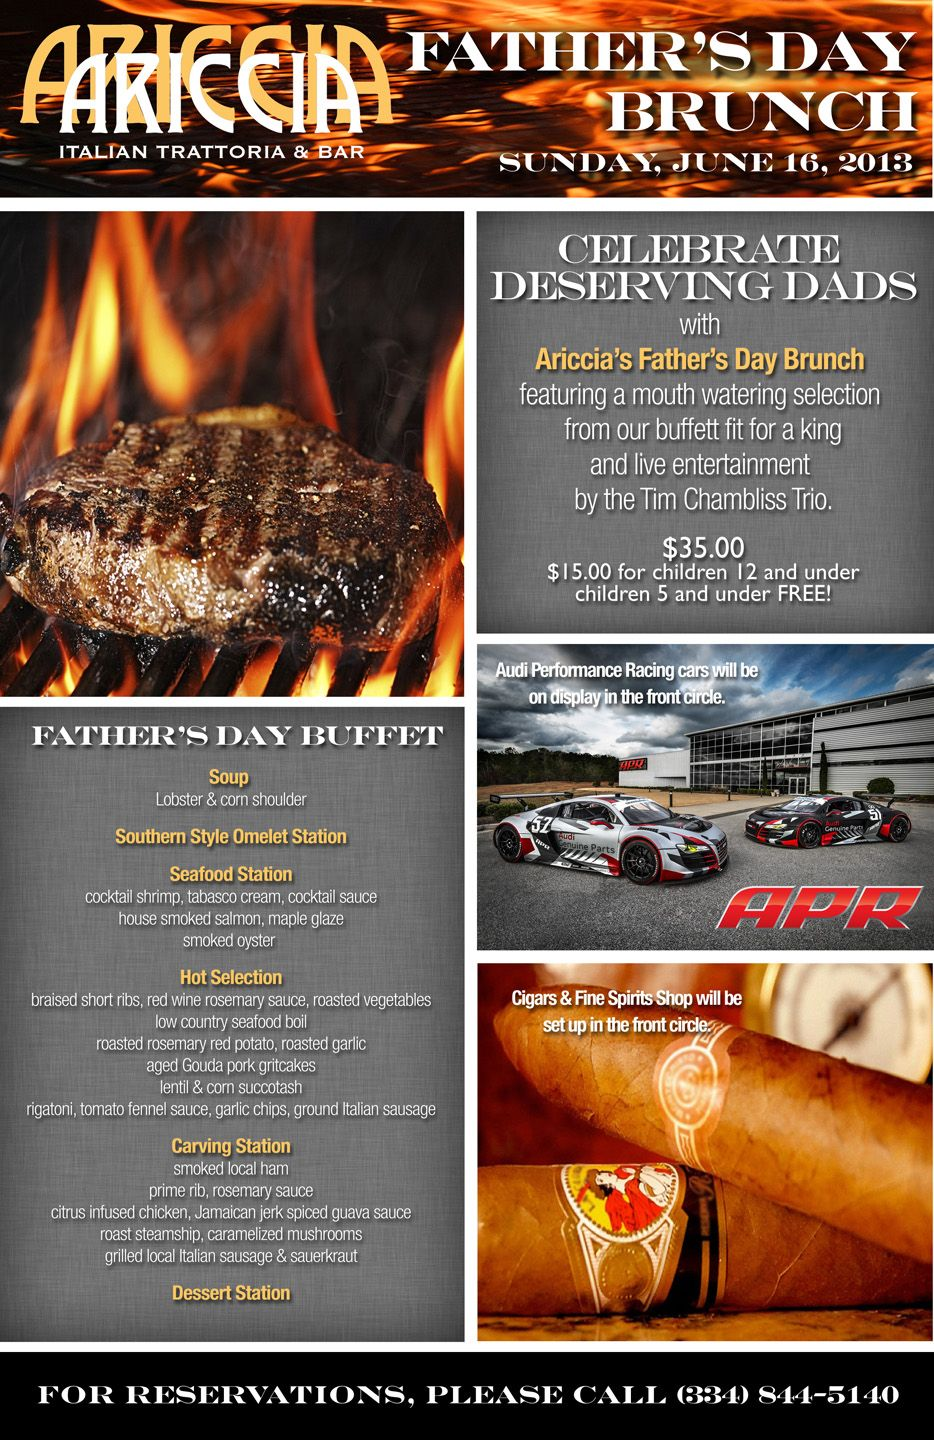 Treat Dad to a Special Father's Day Buffet at Ariccia! #fathersday